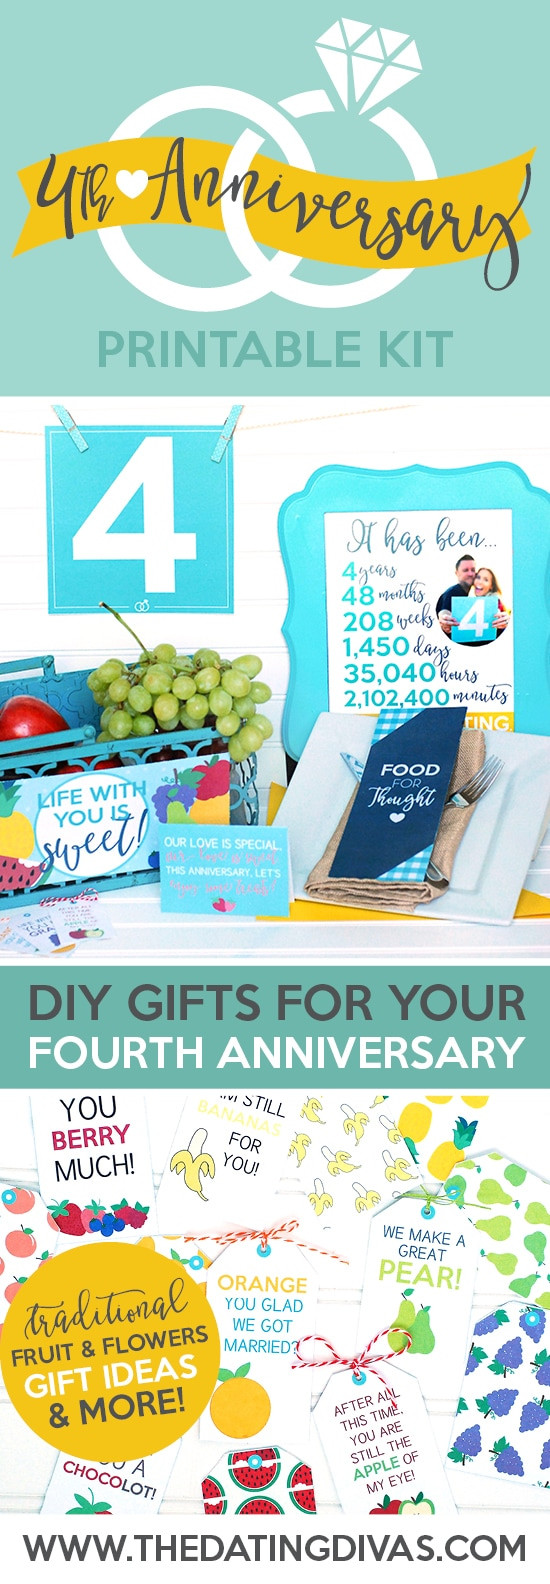 4Th Wedding Anniversary Gift Ideas For Him  Fourth Anniversary Gift Printable Kit The Dating Divas